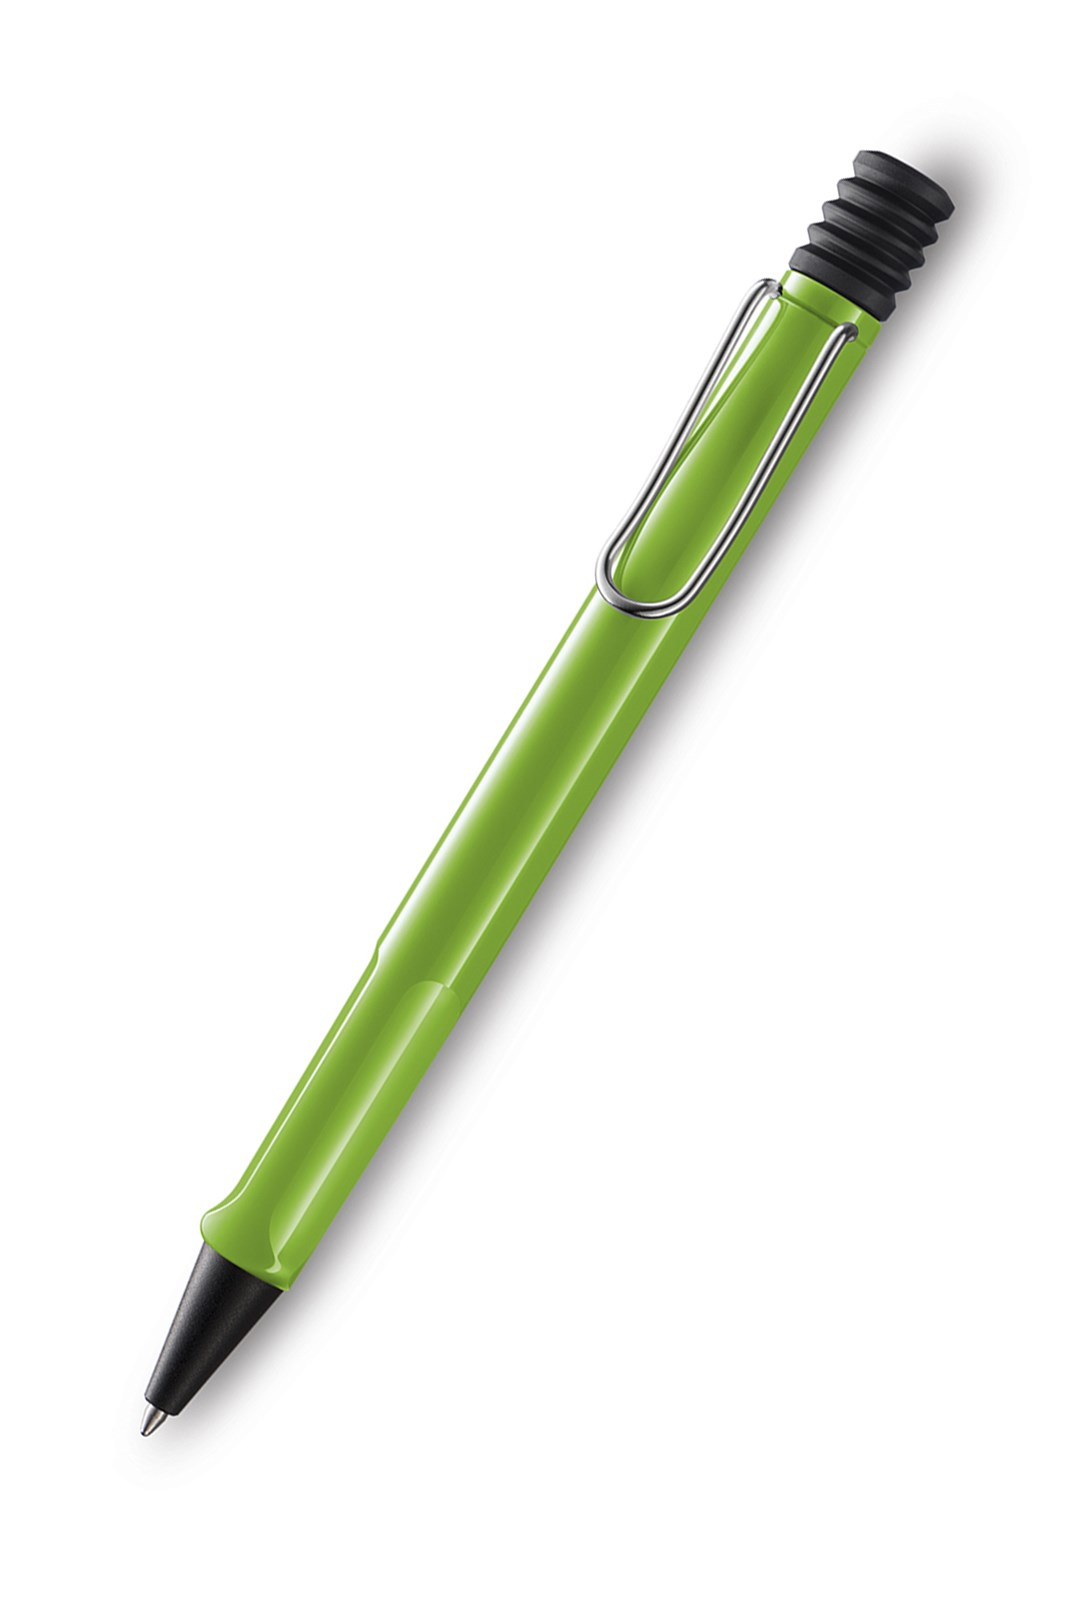 LAMY - SAFARI - Ballpoint Pen - Green